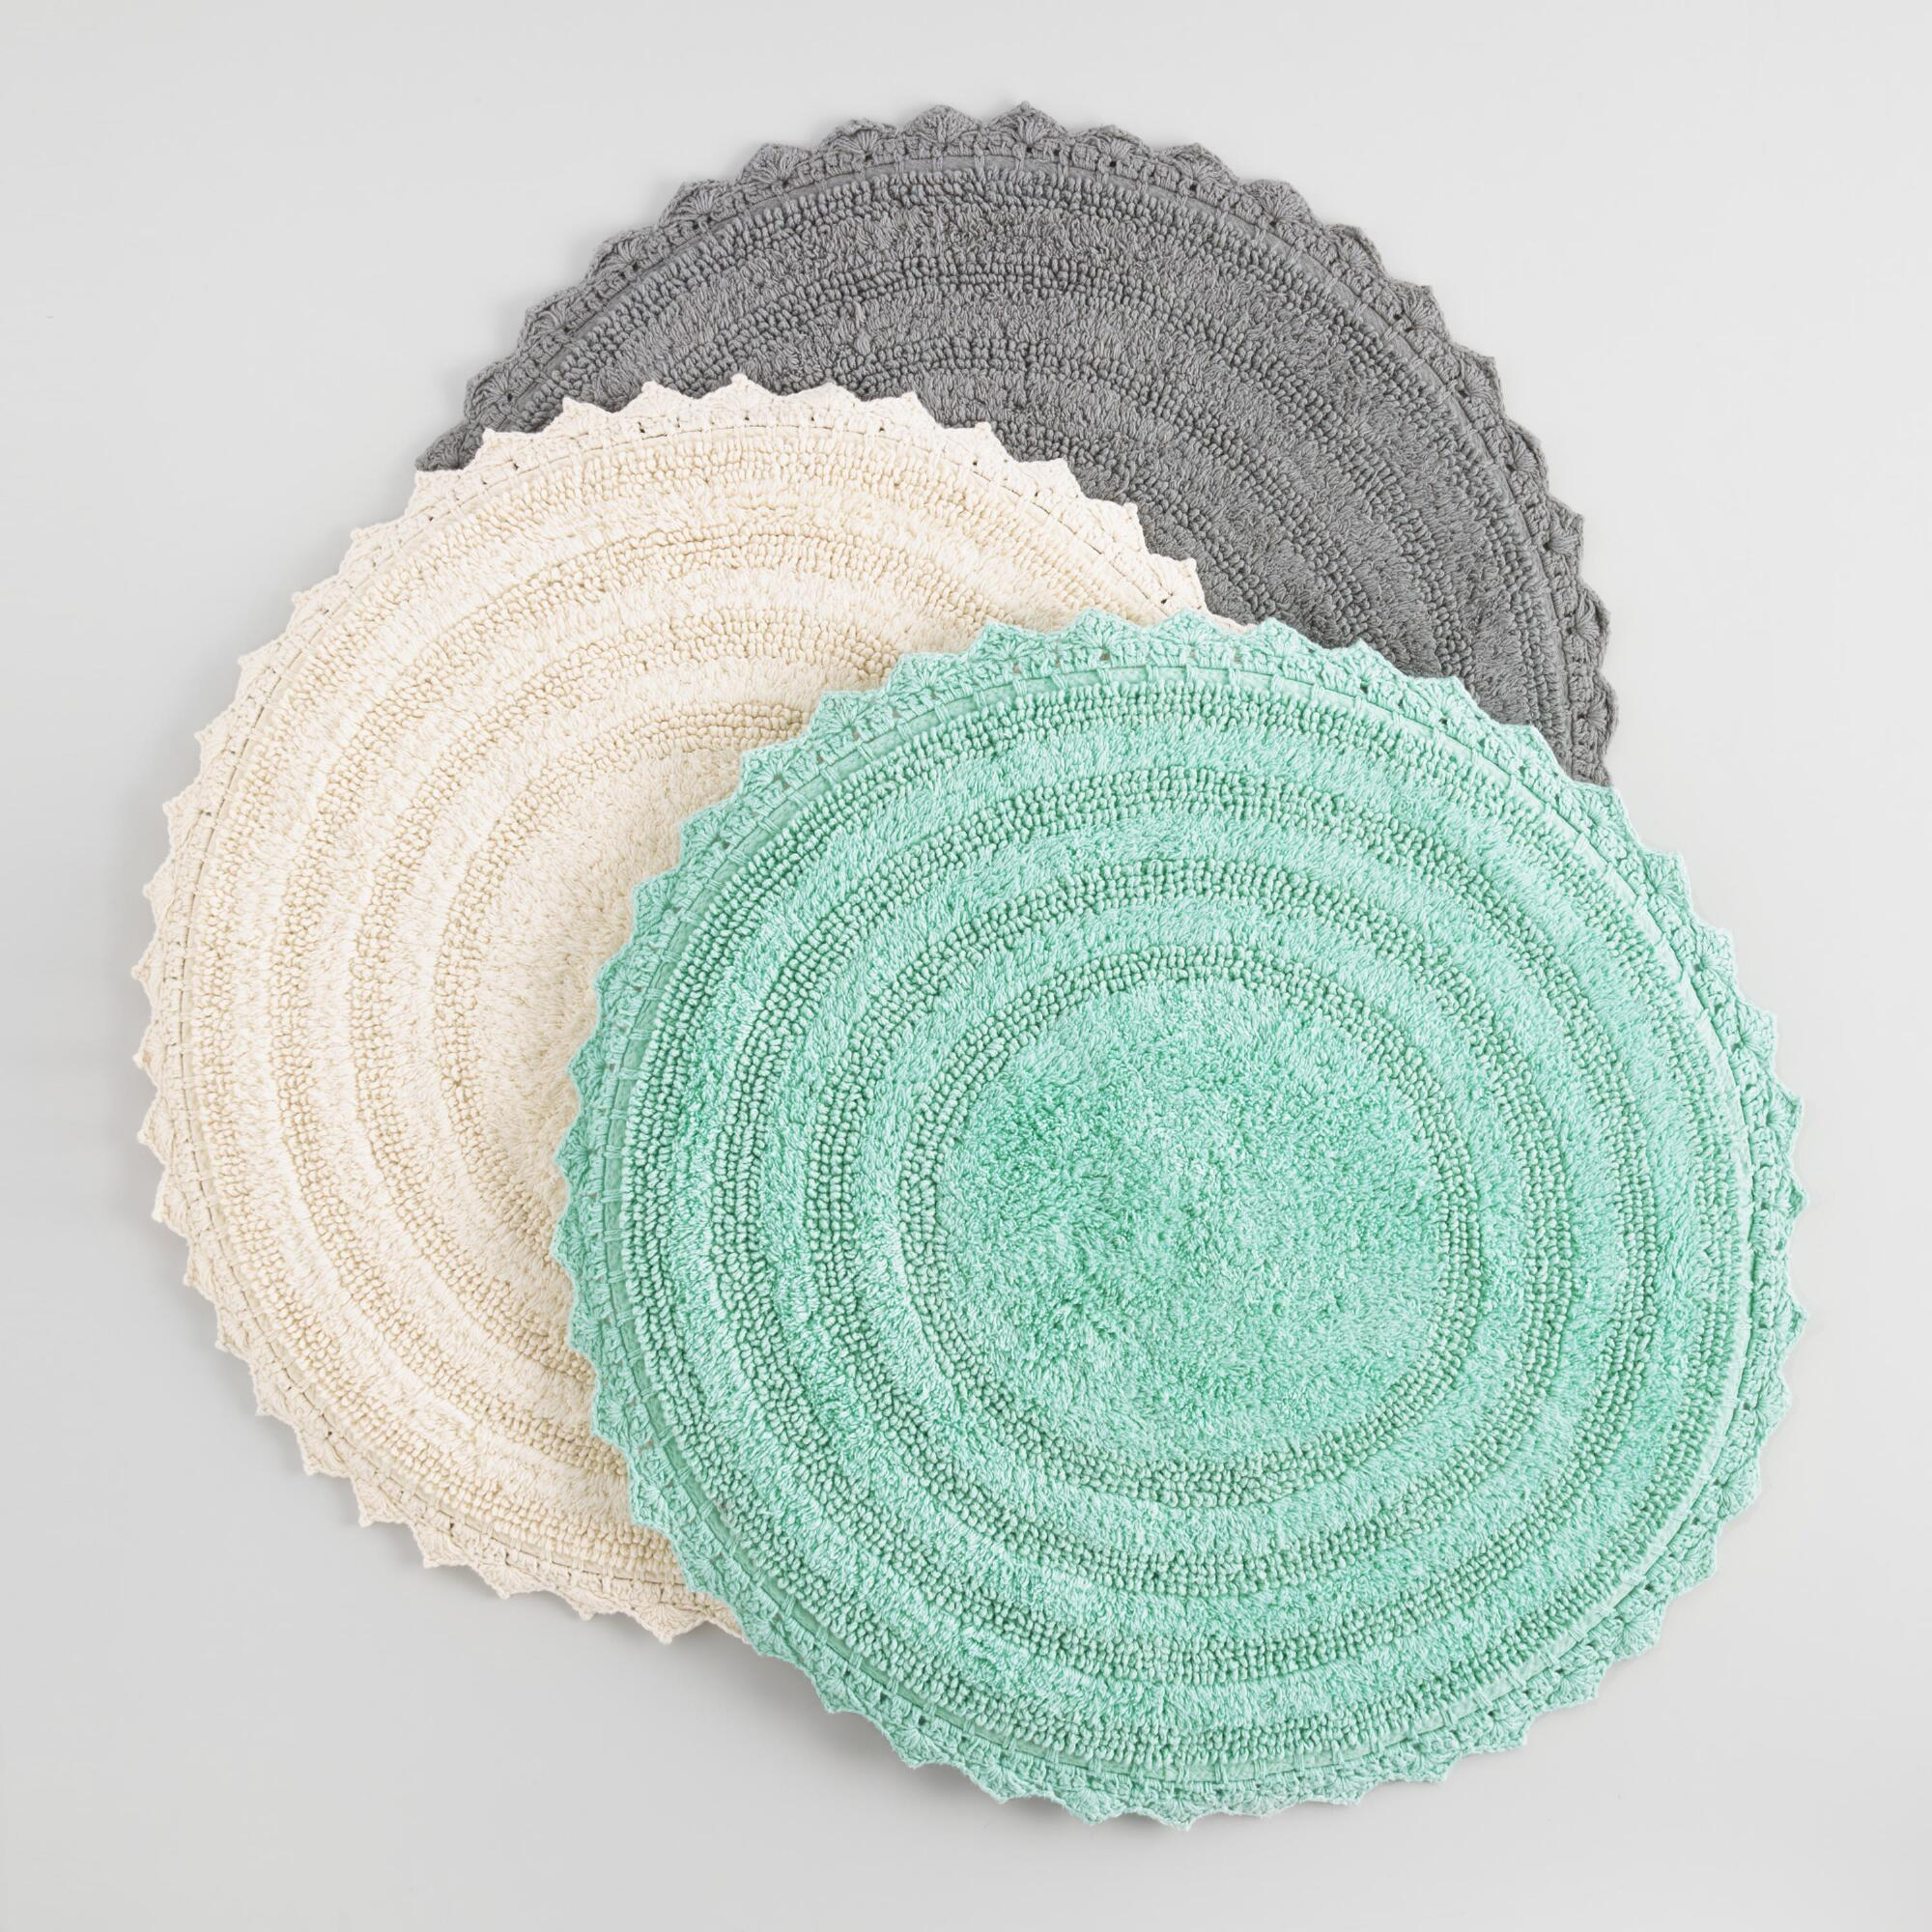 Find great deals on eBay for round bath mat. Shop with confidence.